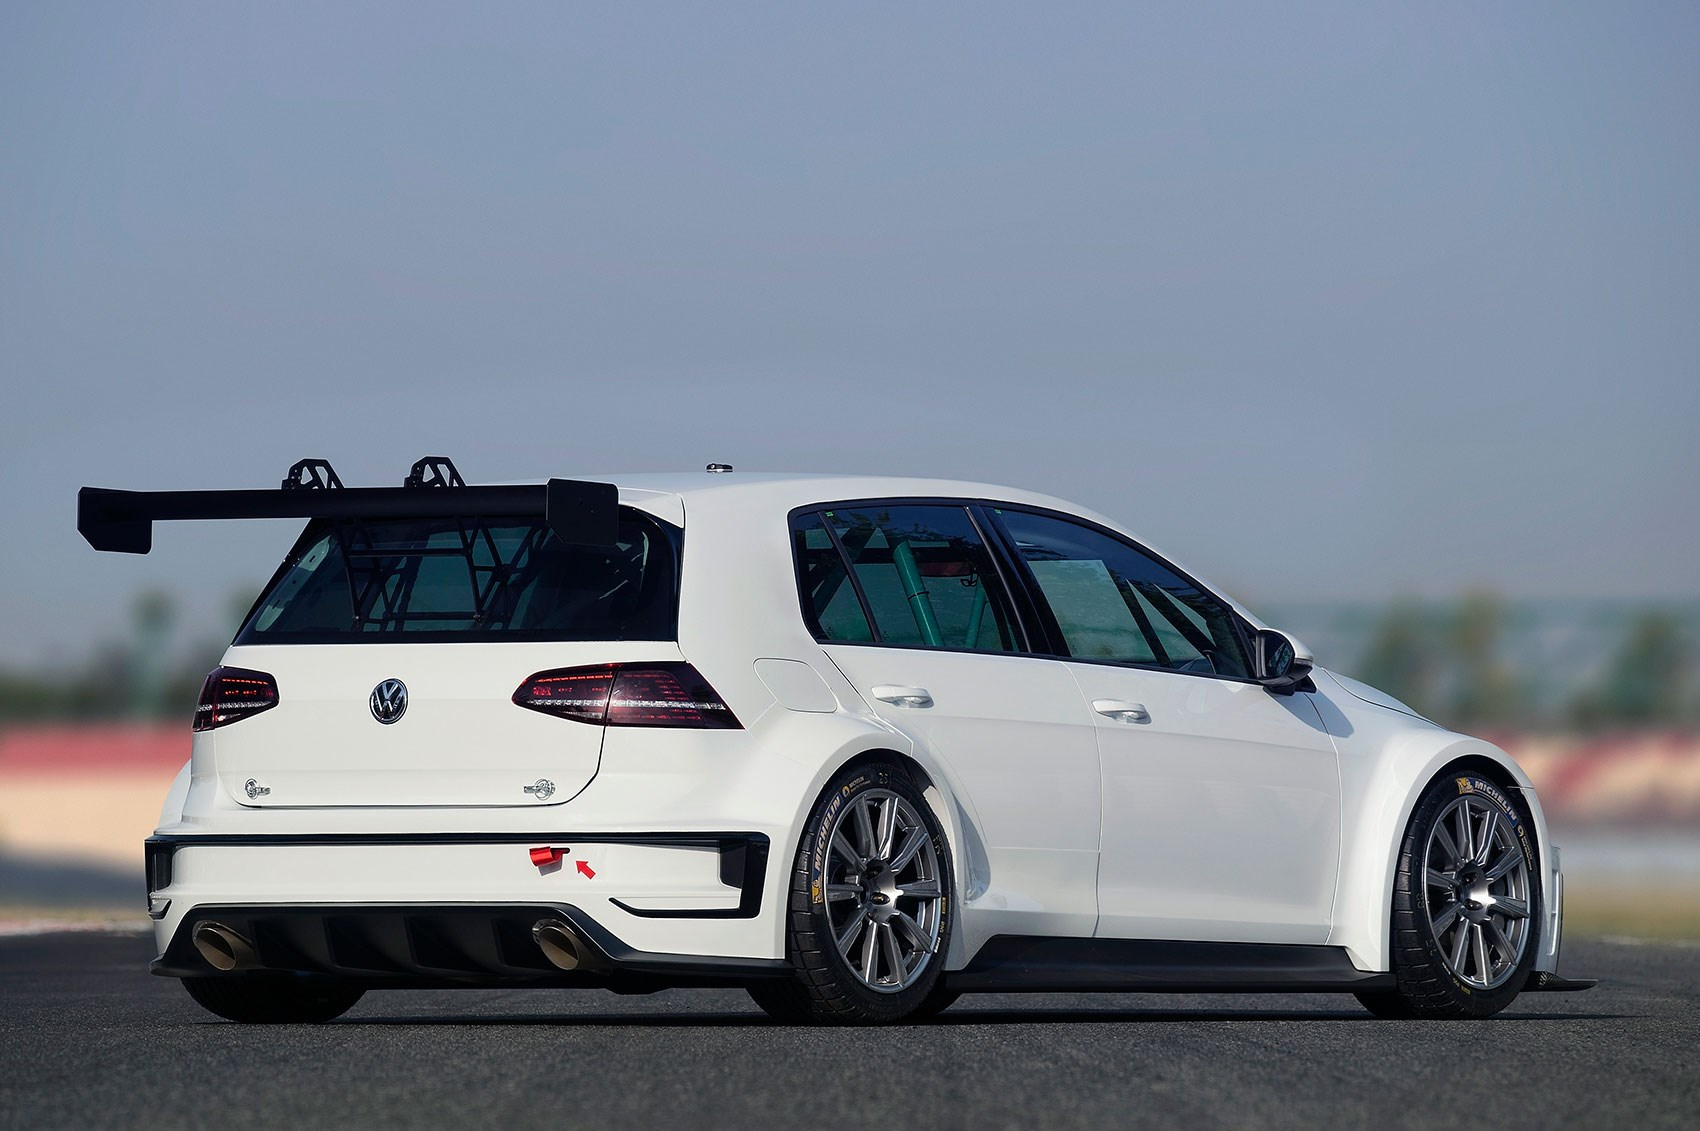 vw dabbles in touring cars with new 2015 golf racer by car magazine. Black Bedroom Furniture Sets. Home Design Ideas